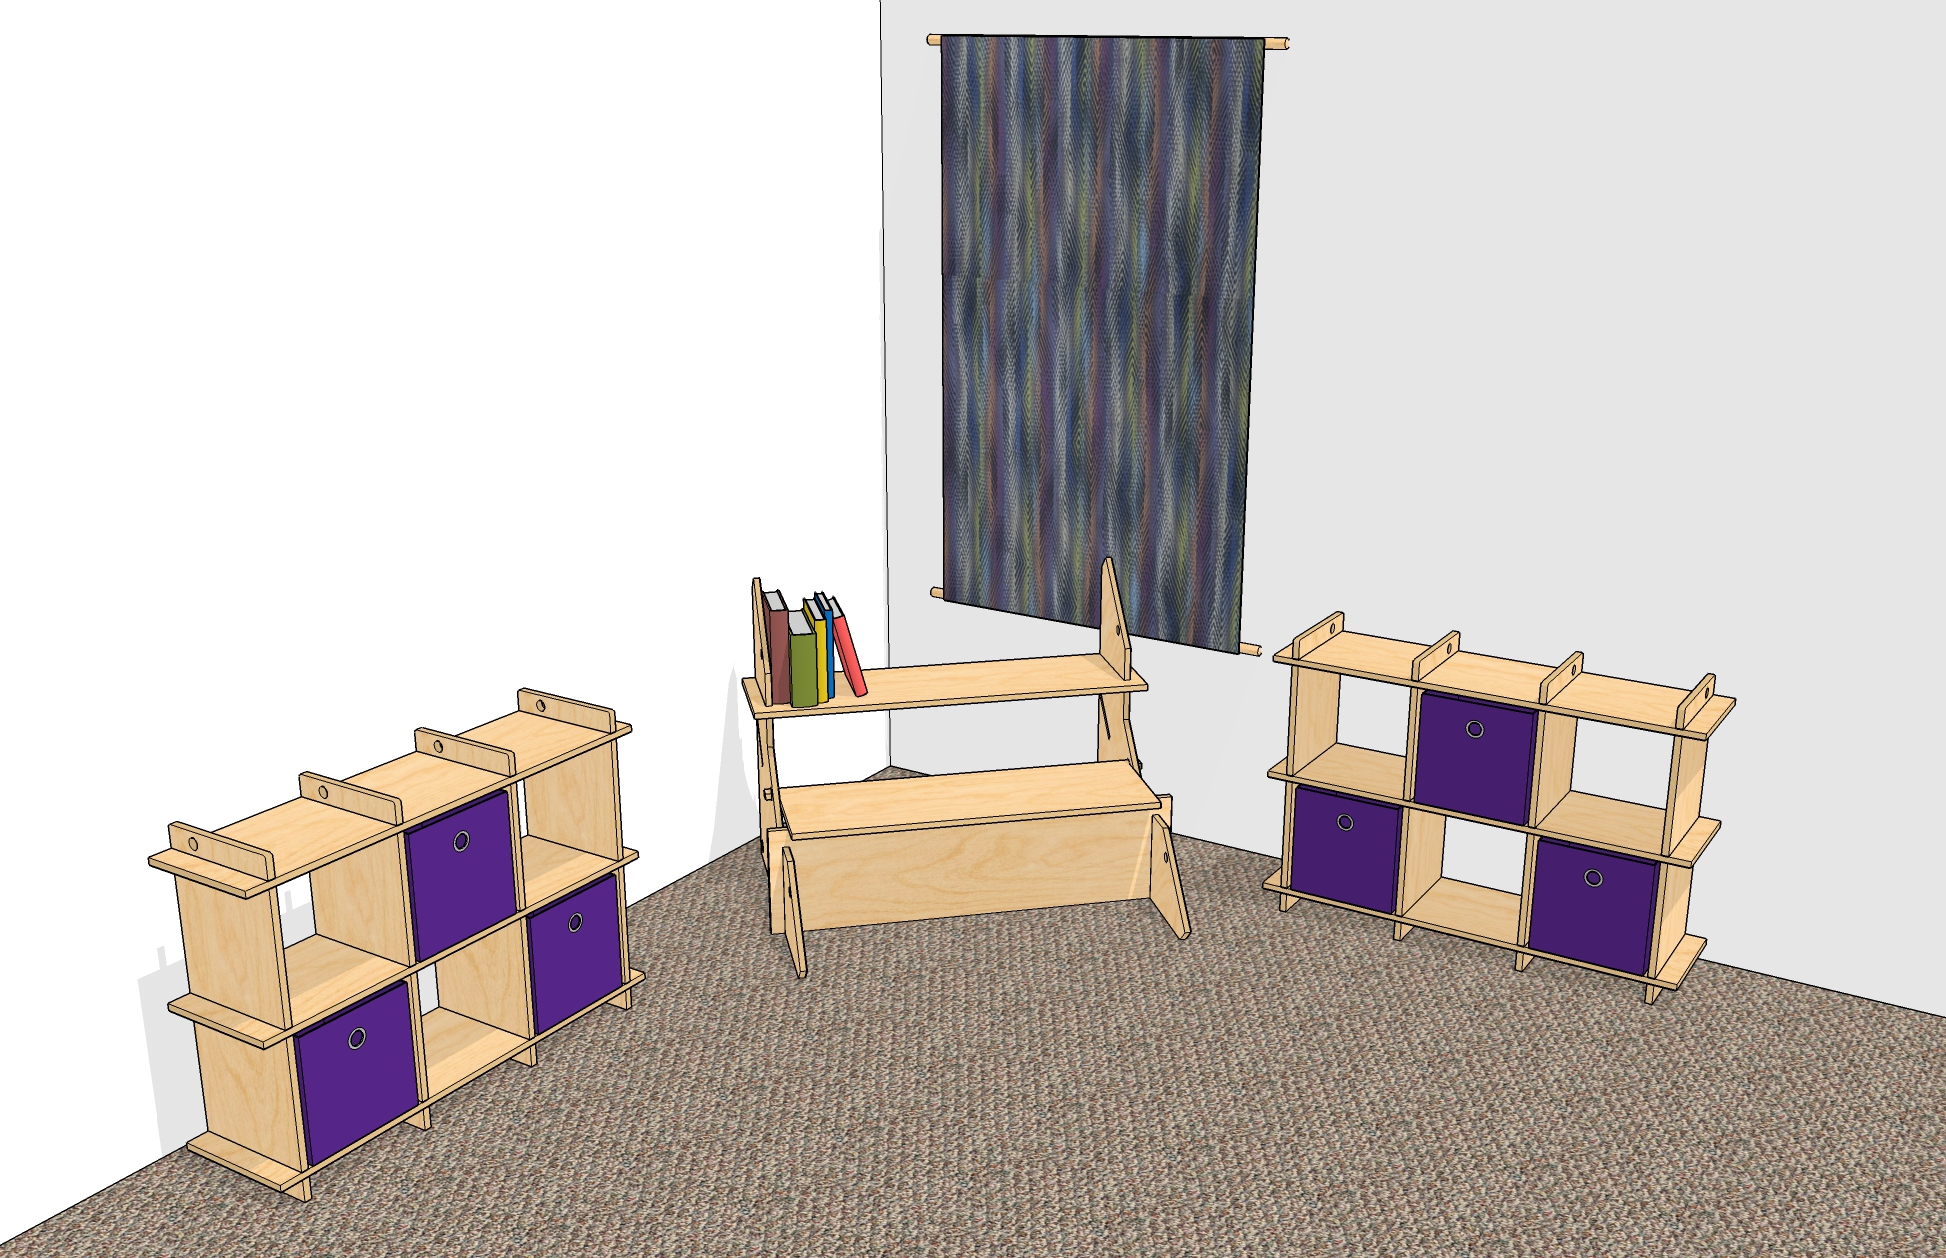 When reconfigured, the playhouse walls and roof turn into a small desk and two shelf units plus a tapestry to hang up for decoration.